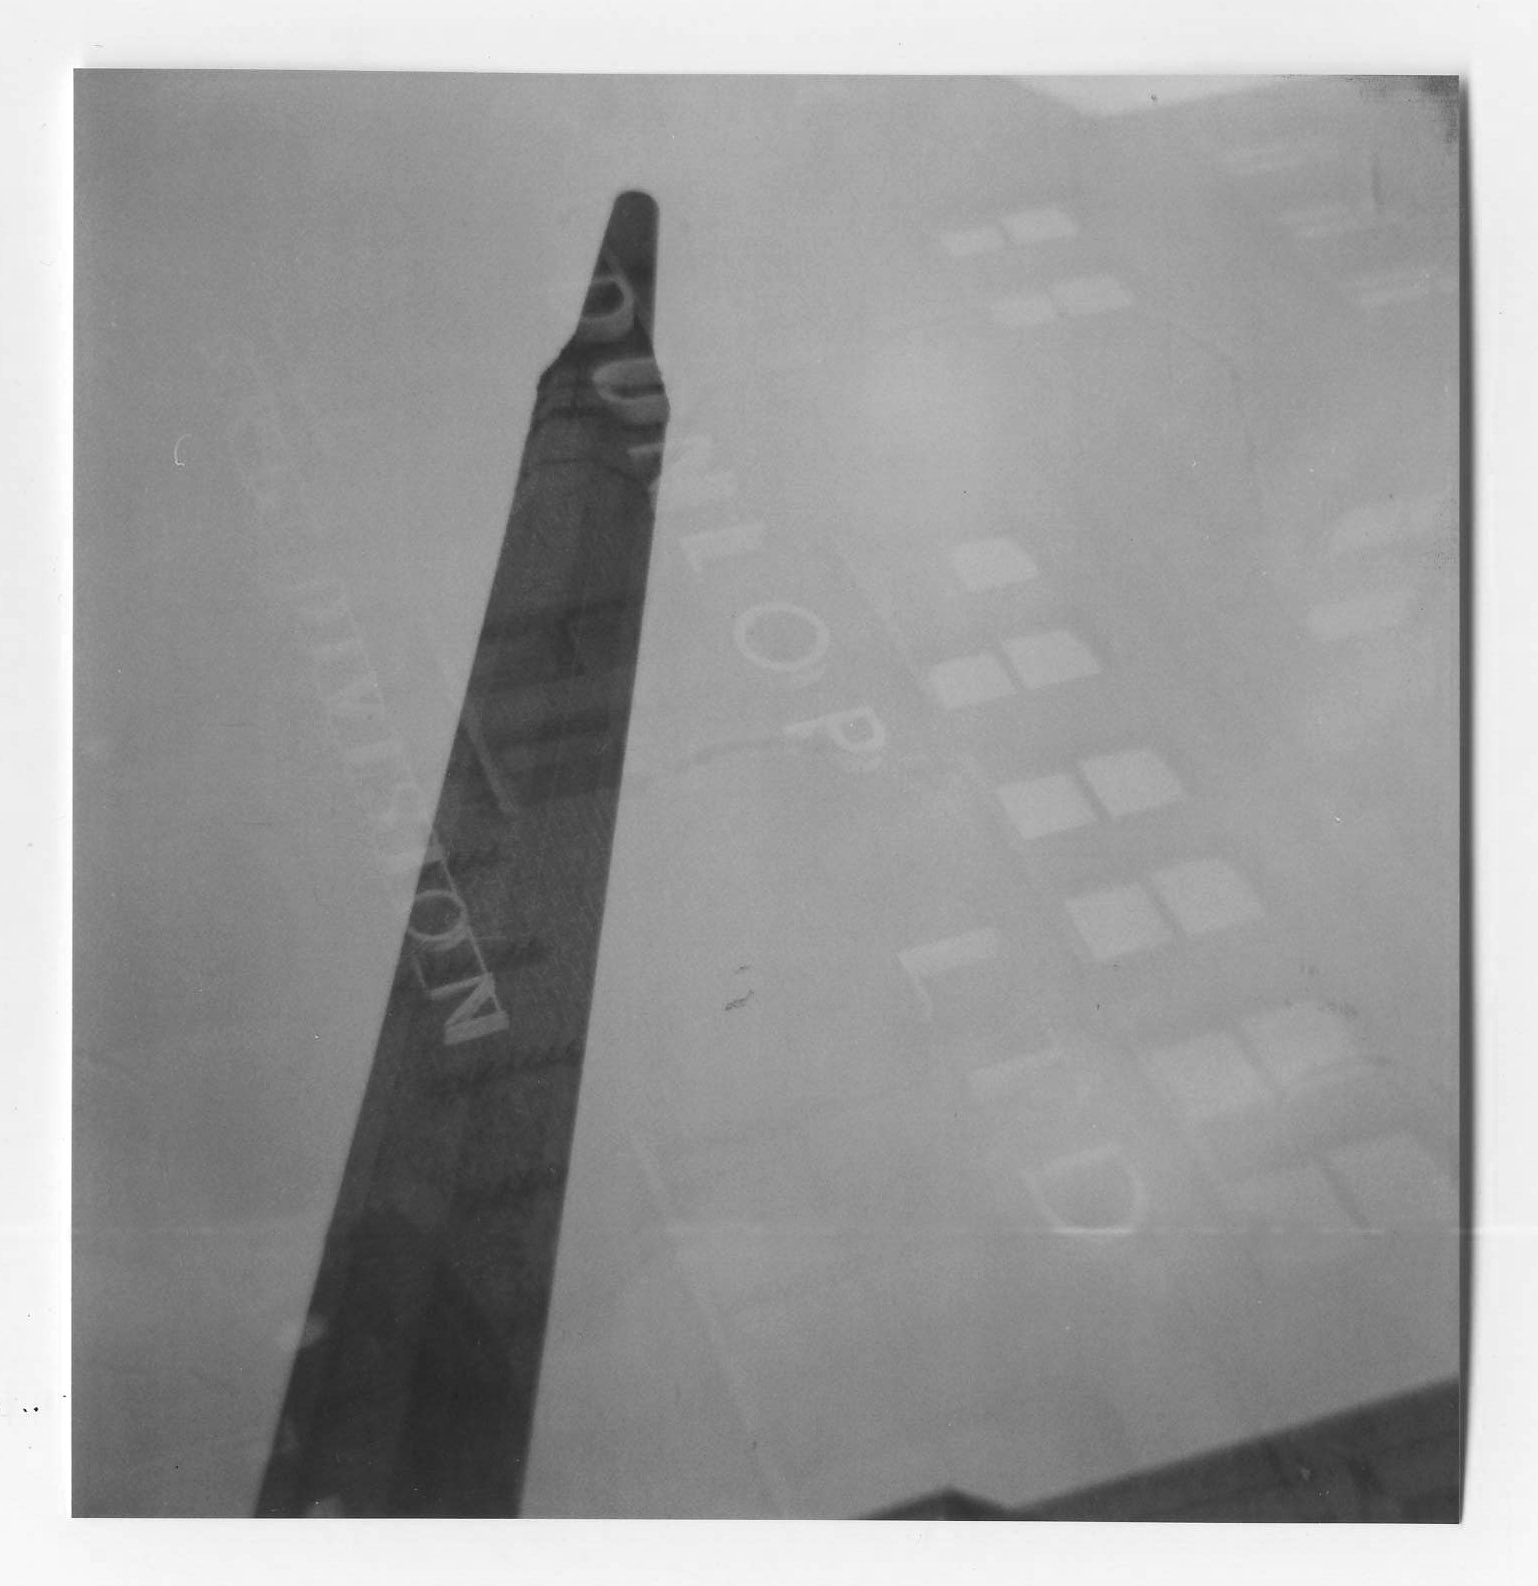 Photography, Lomography, light leaks, film, analog, analogue, 35mm, 120mm, pentax k1000, expired film, manchester, explore, urbex, history, diana, black and white, vintage, hipster, indie, instagram, no filter, experiments, old school, negatives, printing, travel, budapest, wales, pug